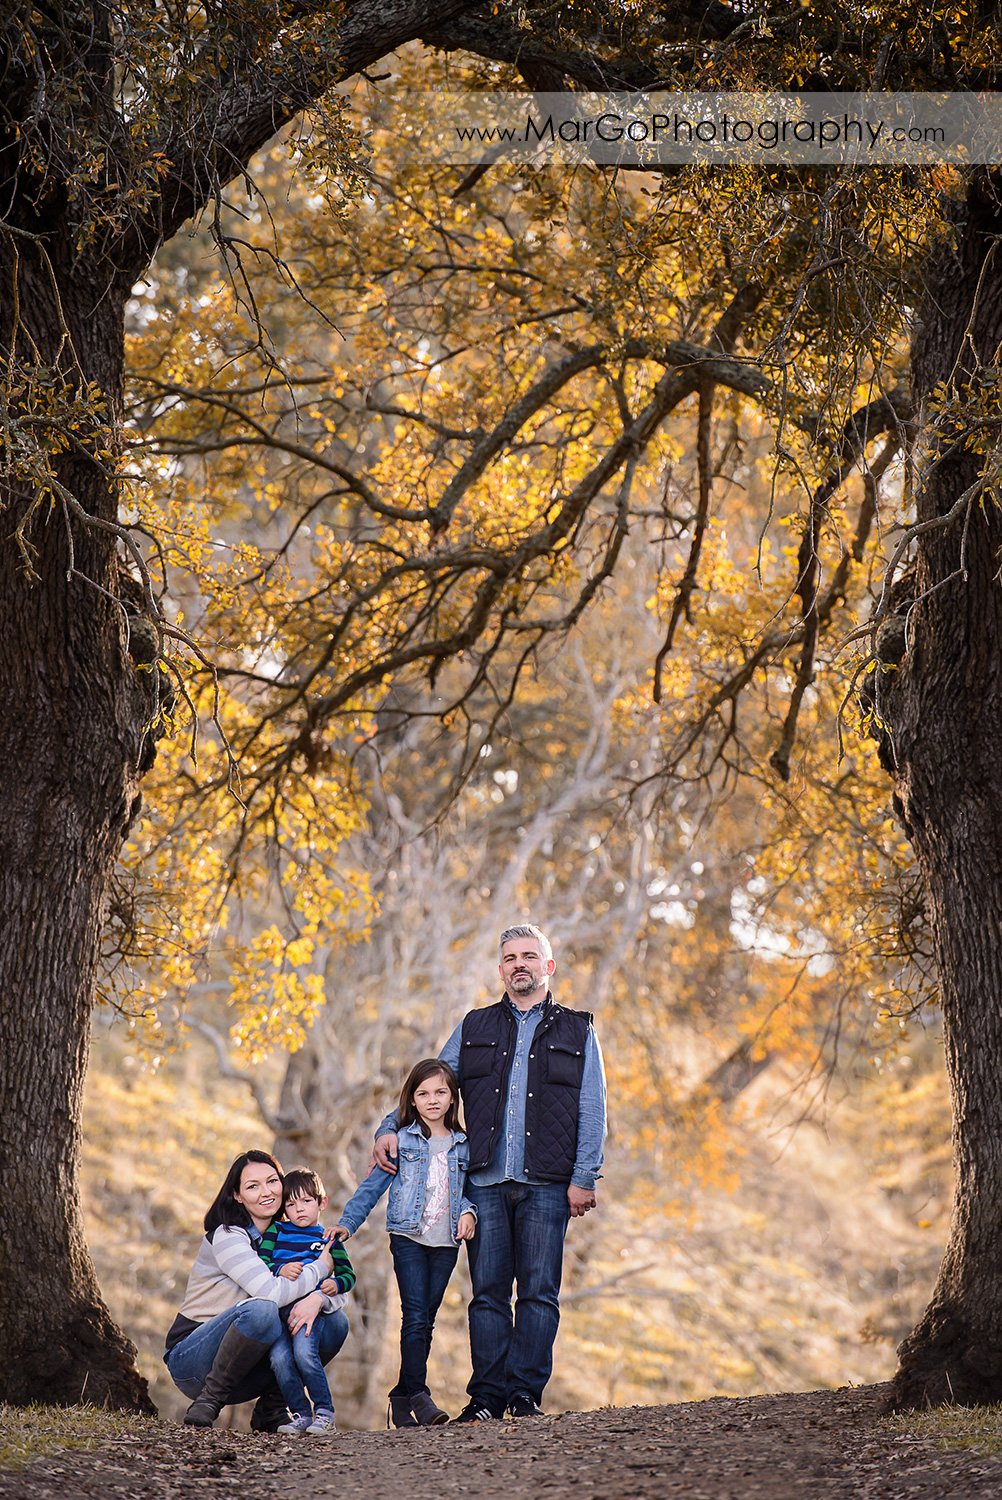 full body vertical portrait of family of four during family session at Diablo Foothills Regional Park in Walnut Creek